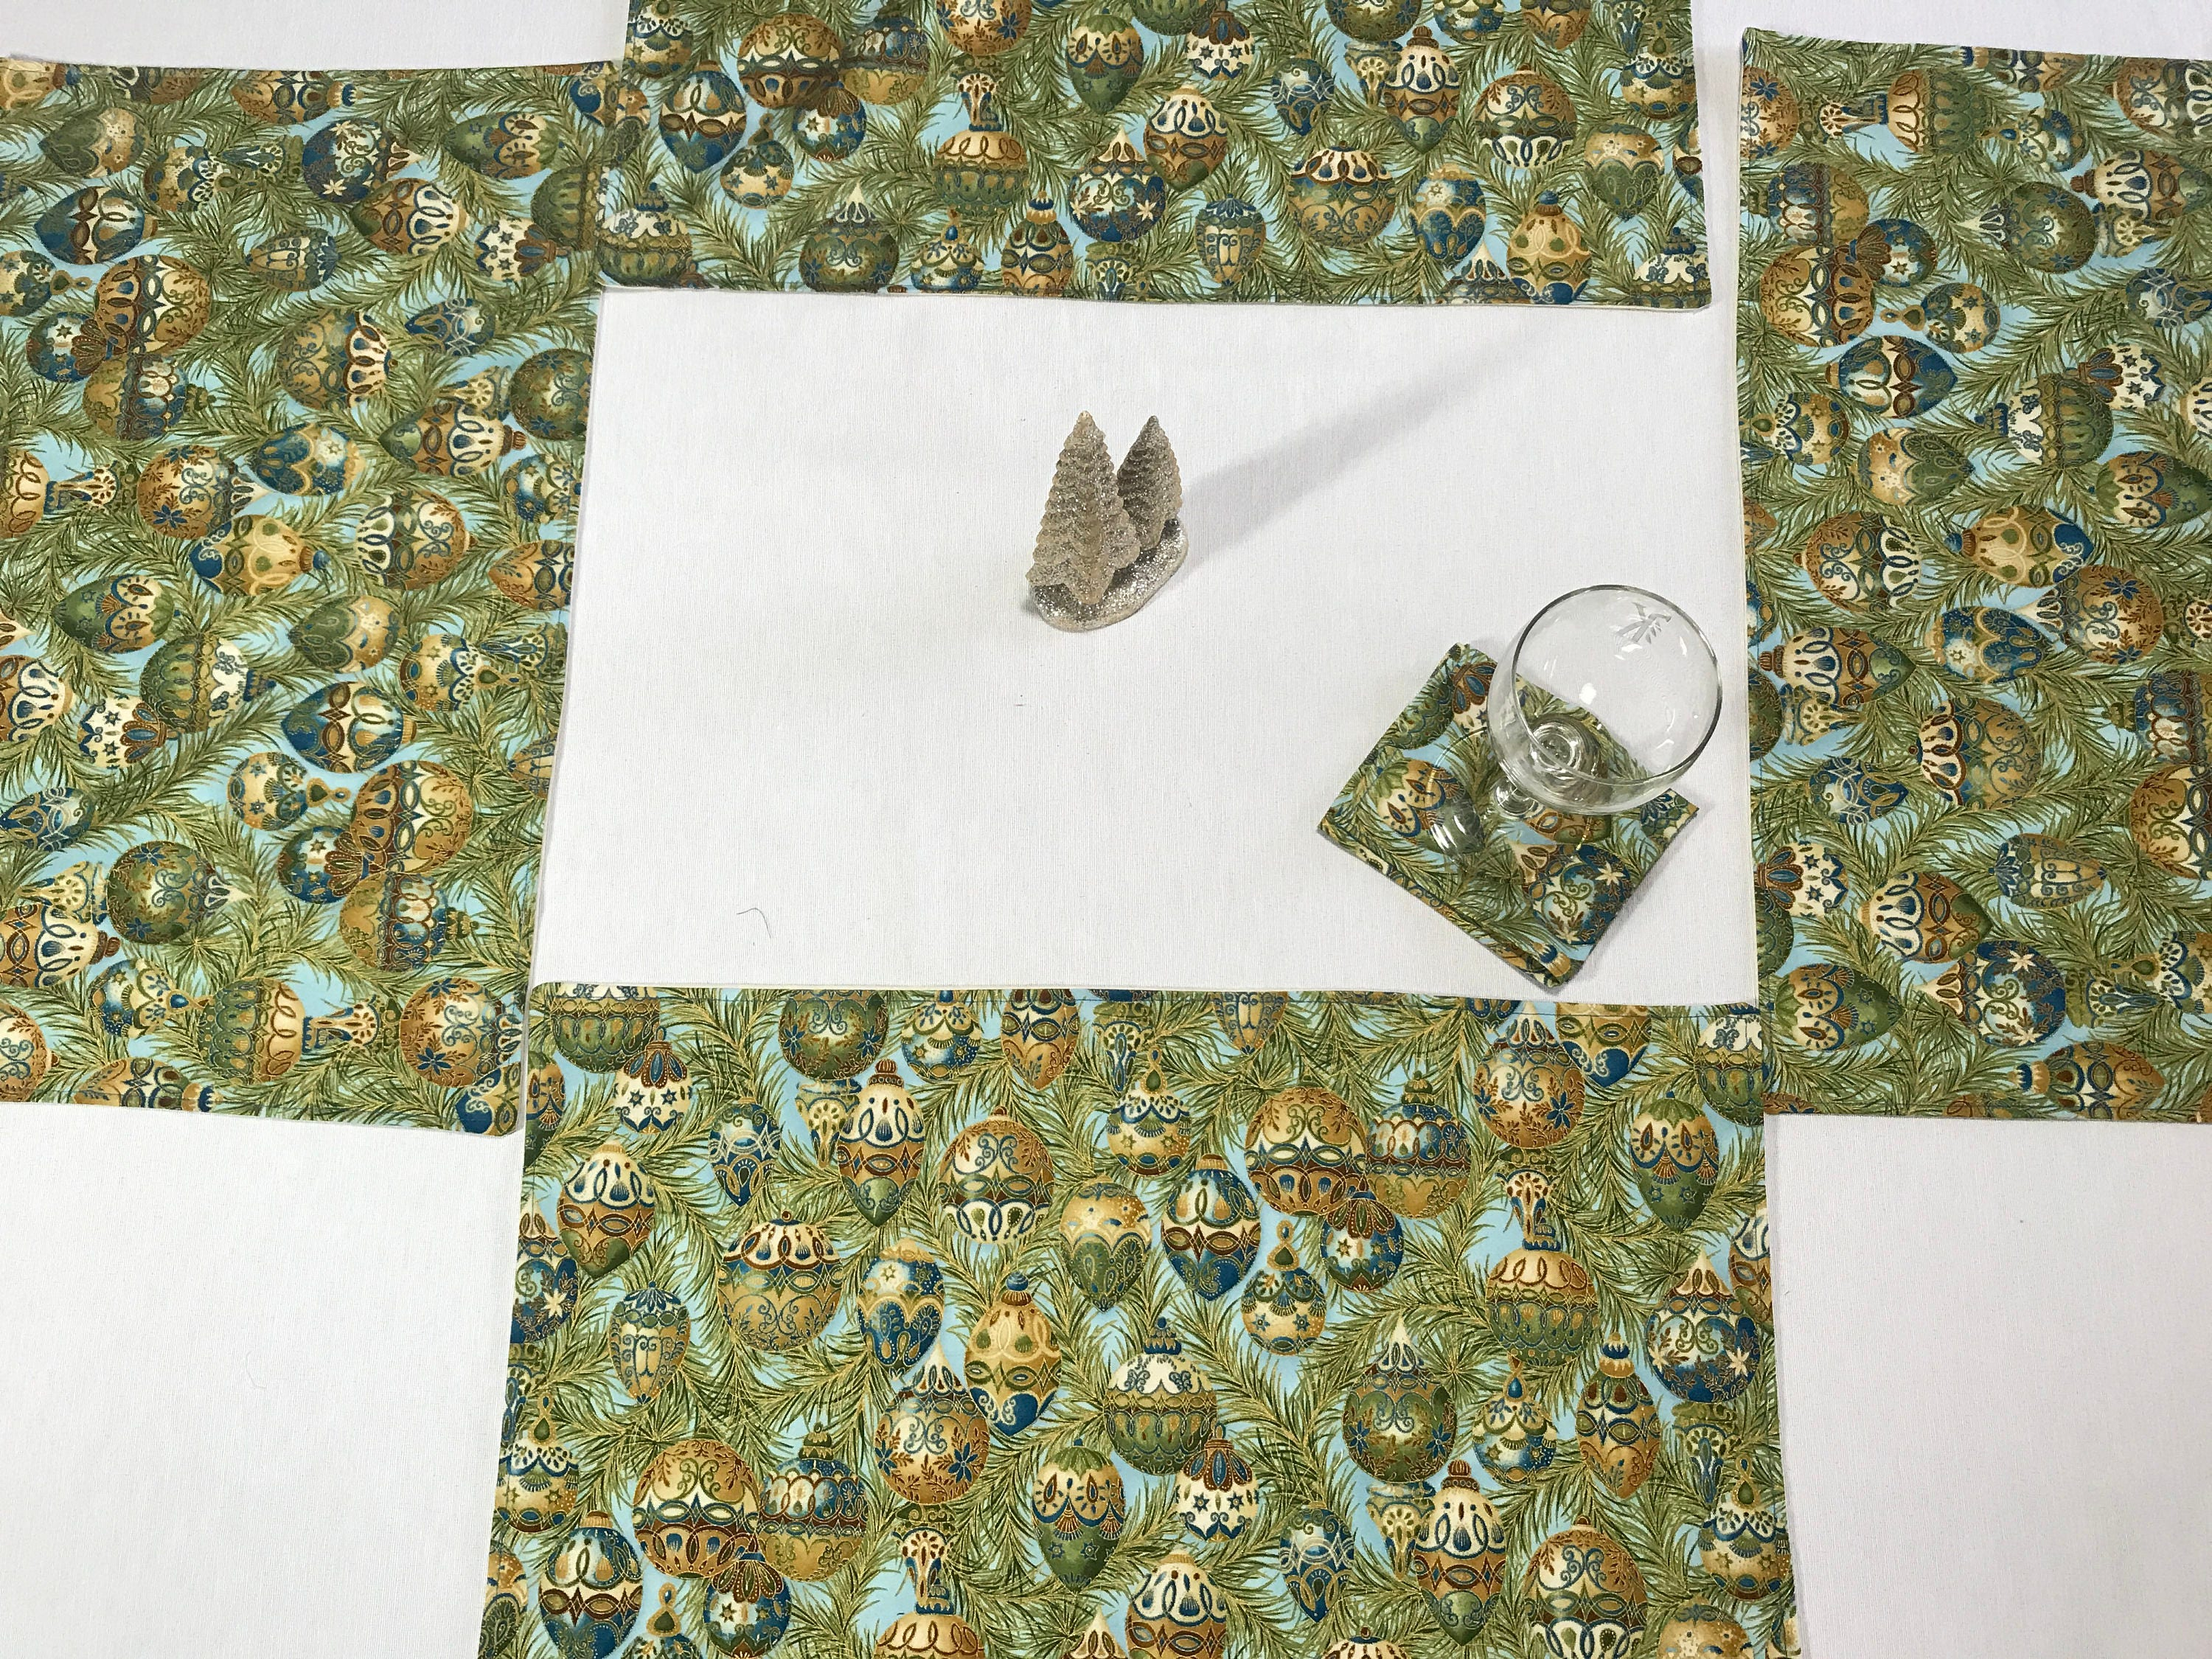 cloth placemats and napkins gallery photo gallery photo gallery photo gallery photo - Christmas Placemats And Napkins